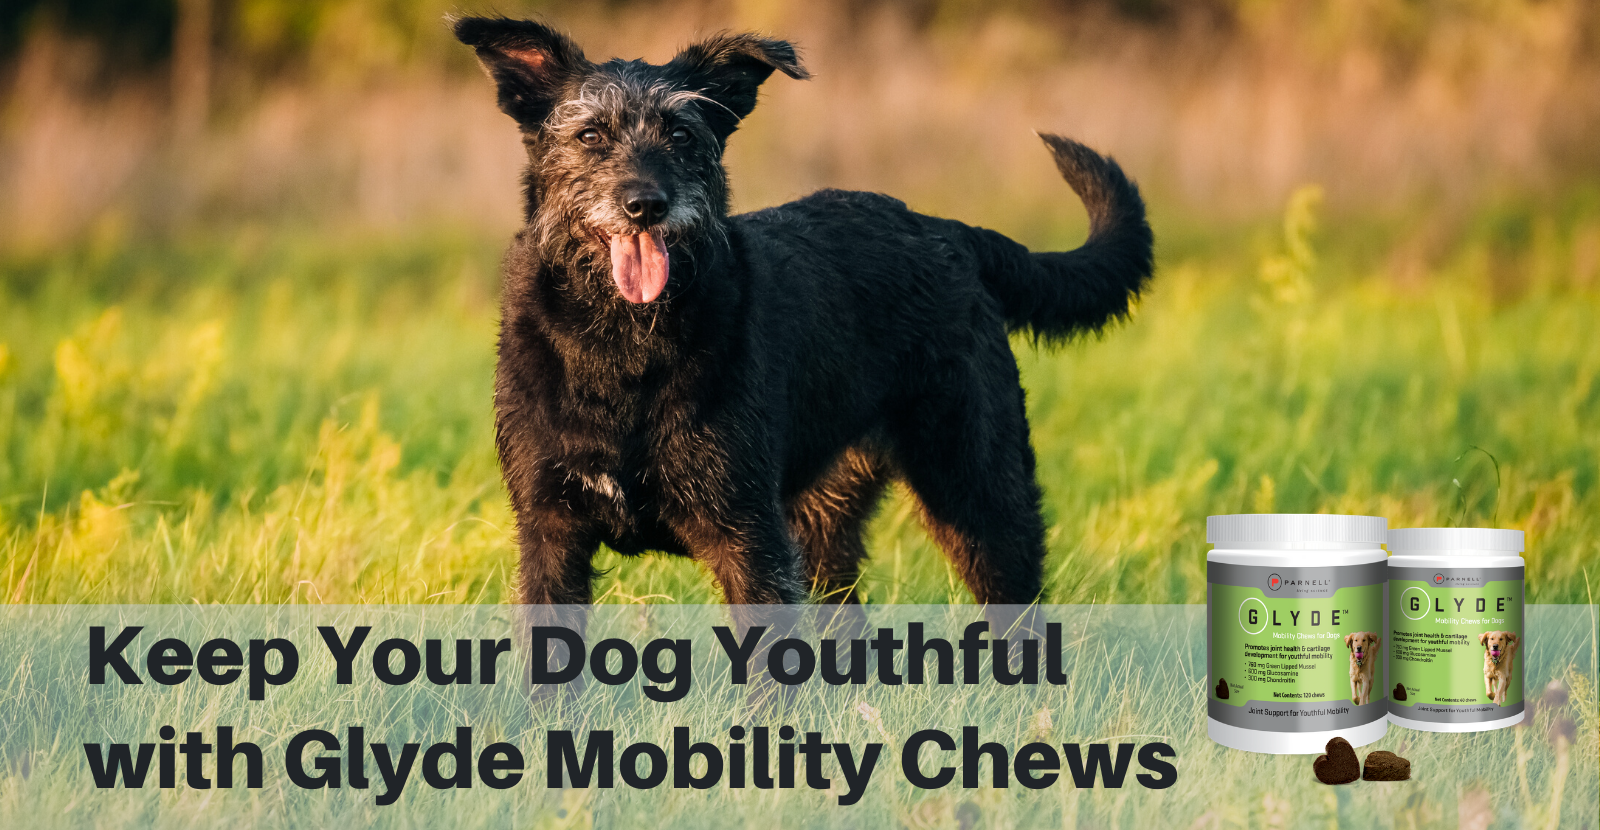 Keep Your Dog Youthful with Glyde Mobility Chews